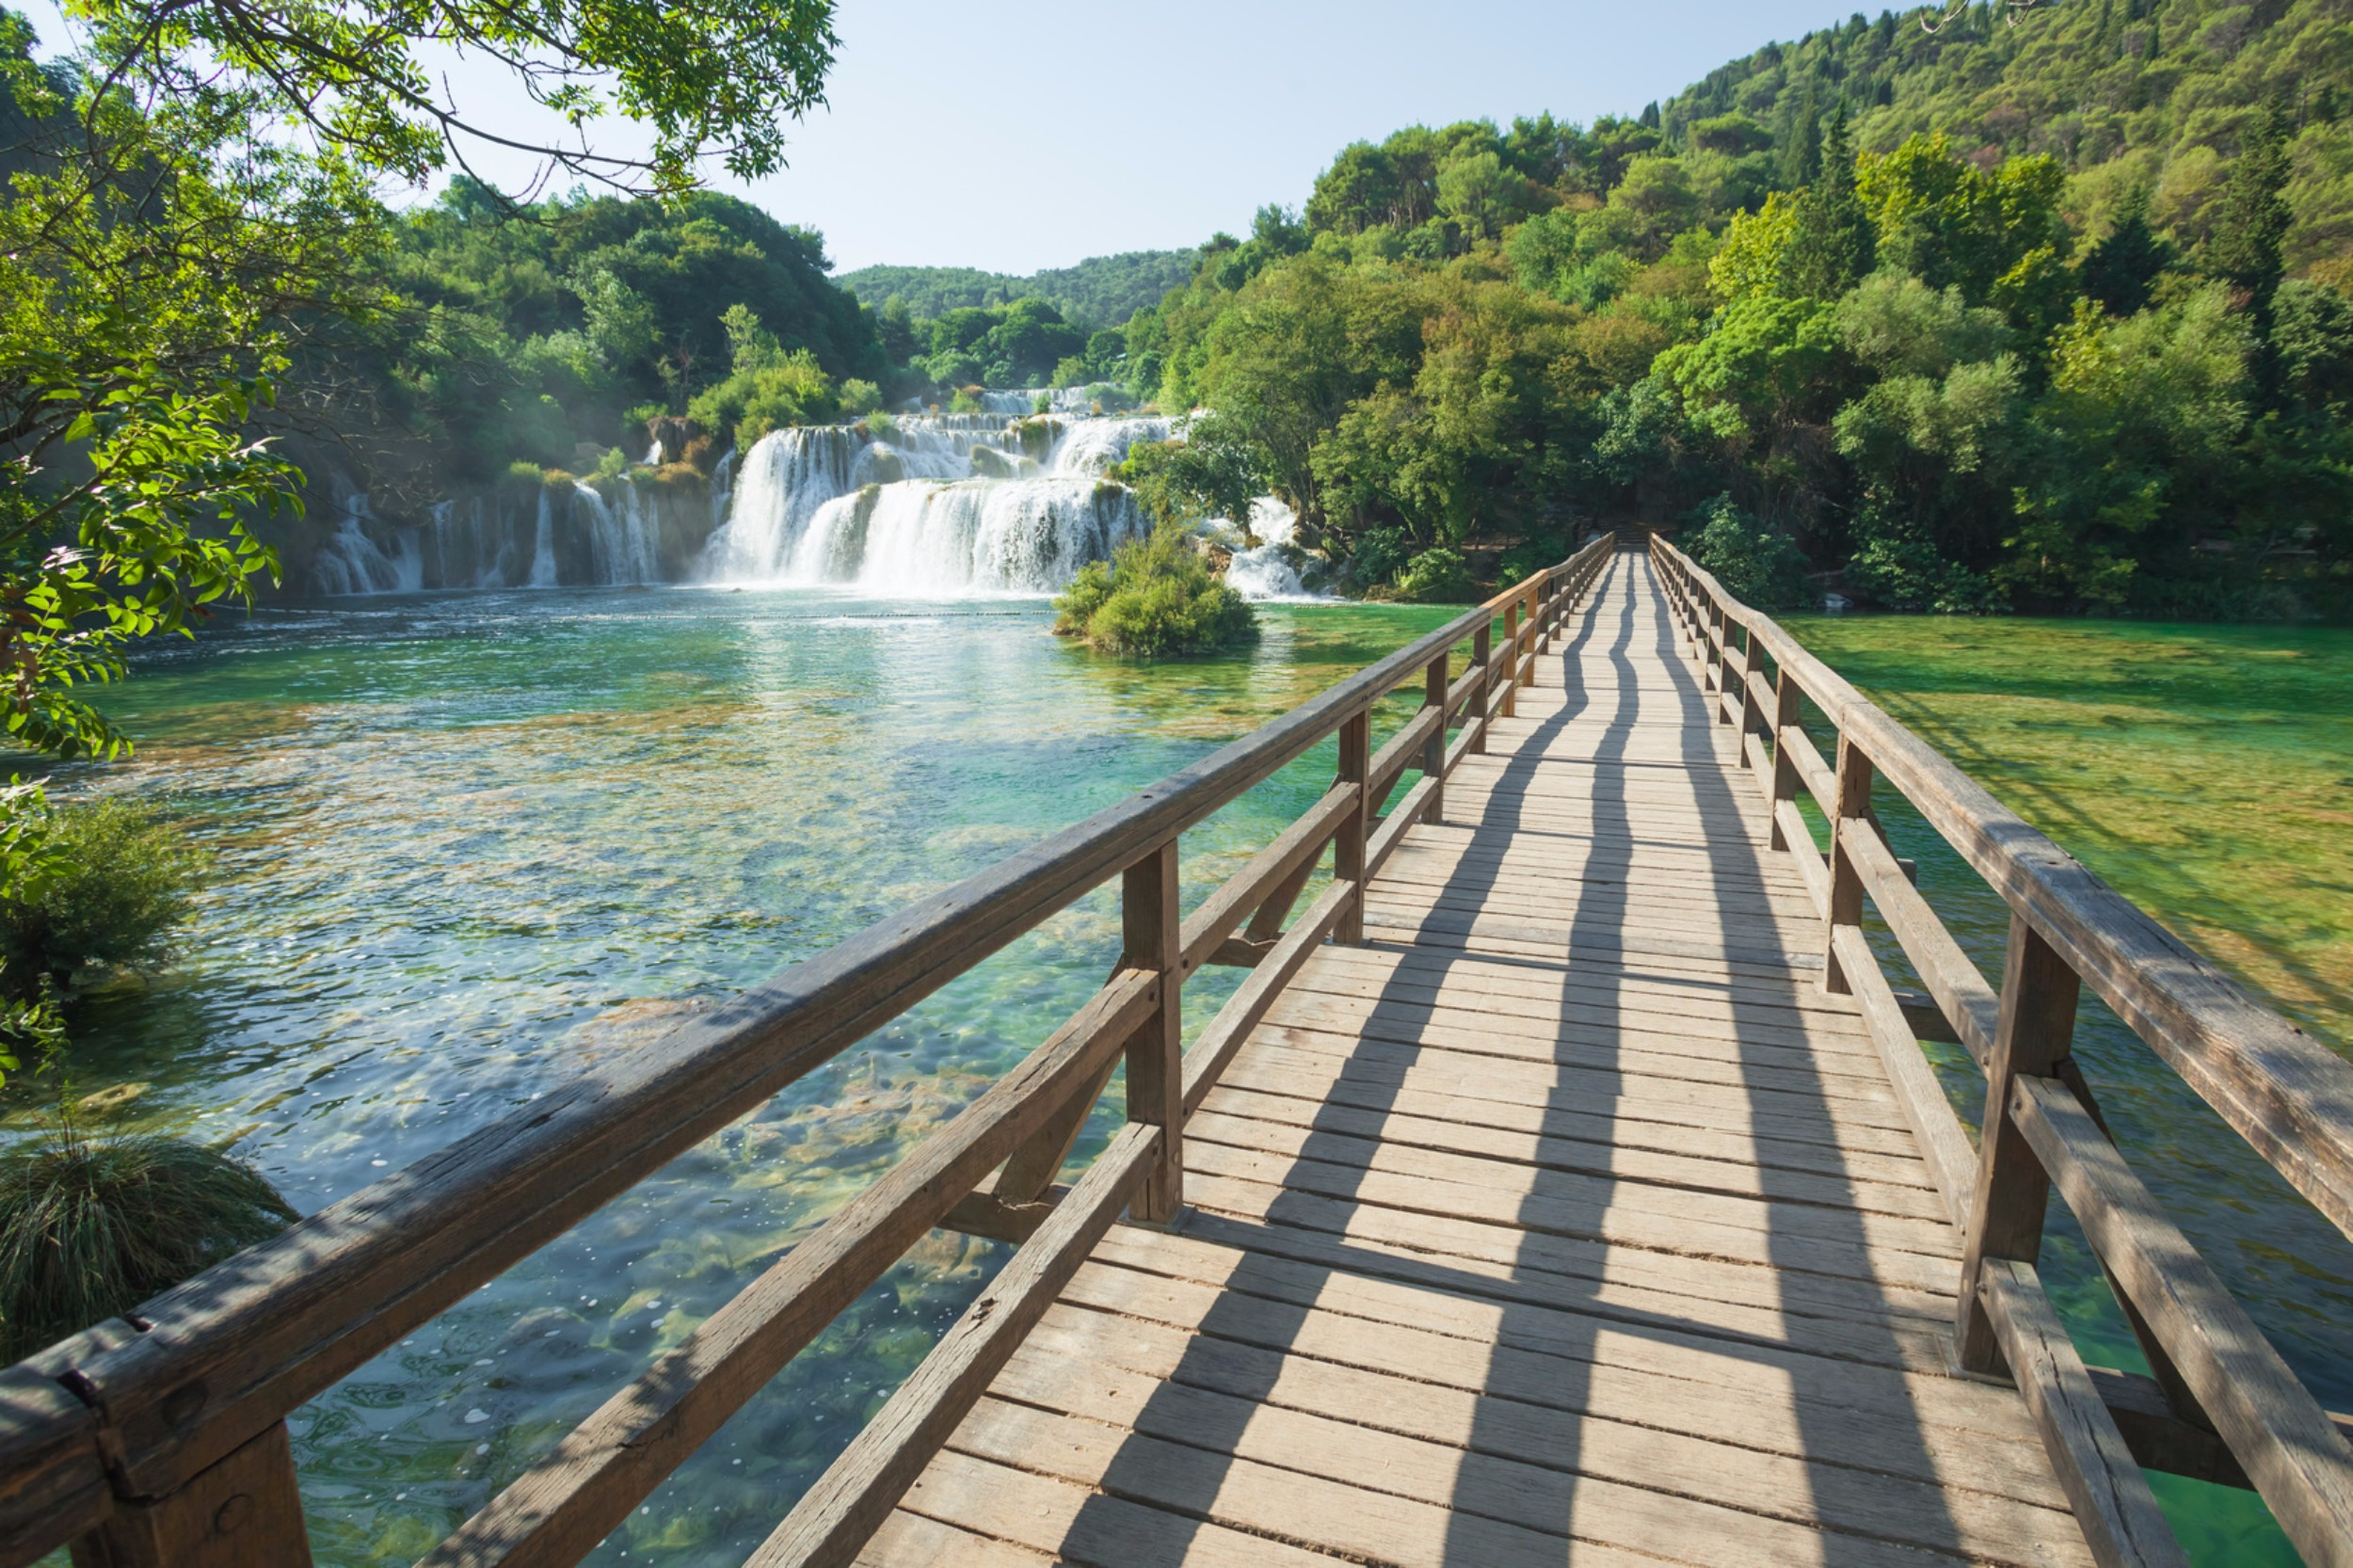 Outside Go - Best of Croatia - Plitvice Lakes National Park - Croatia.jpg